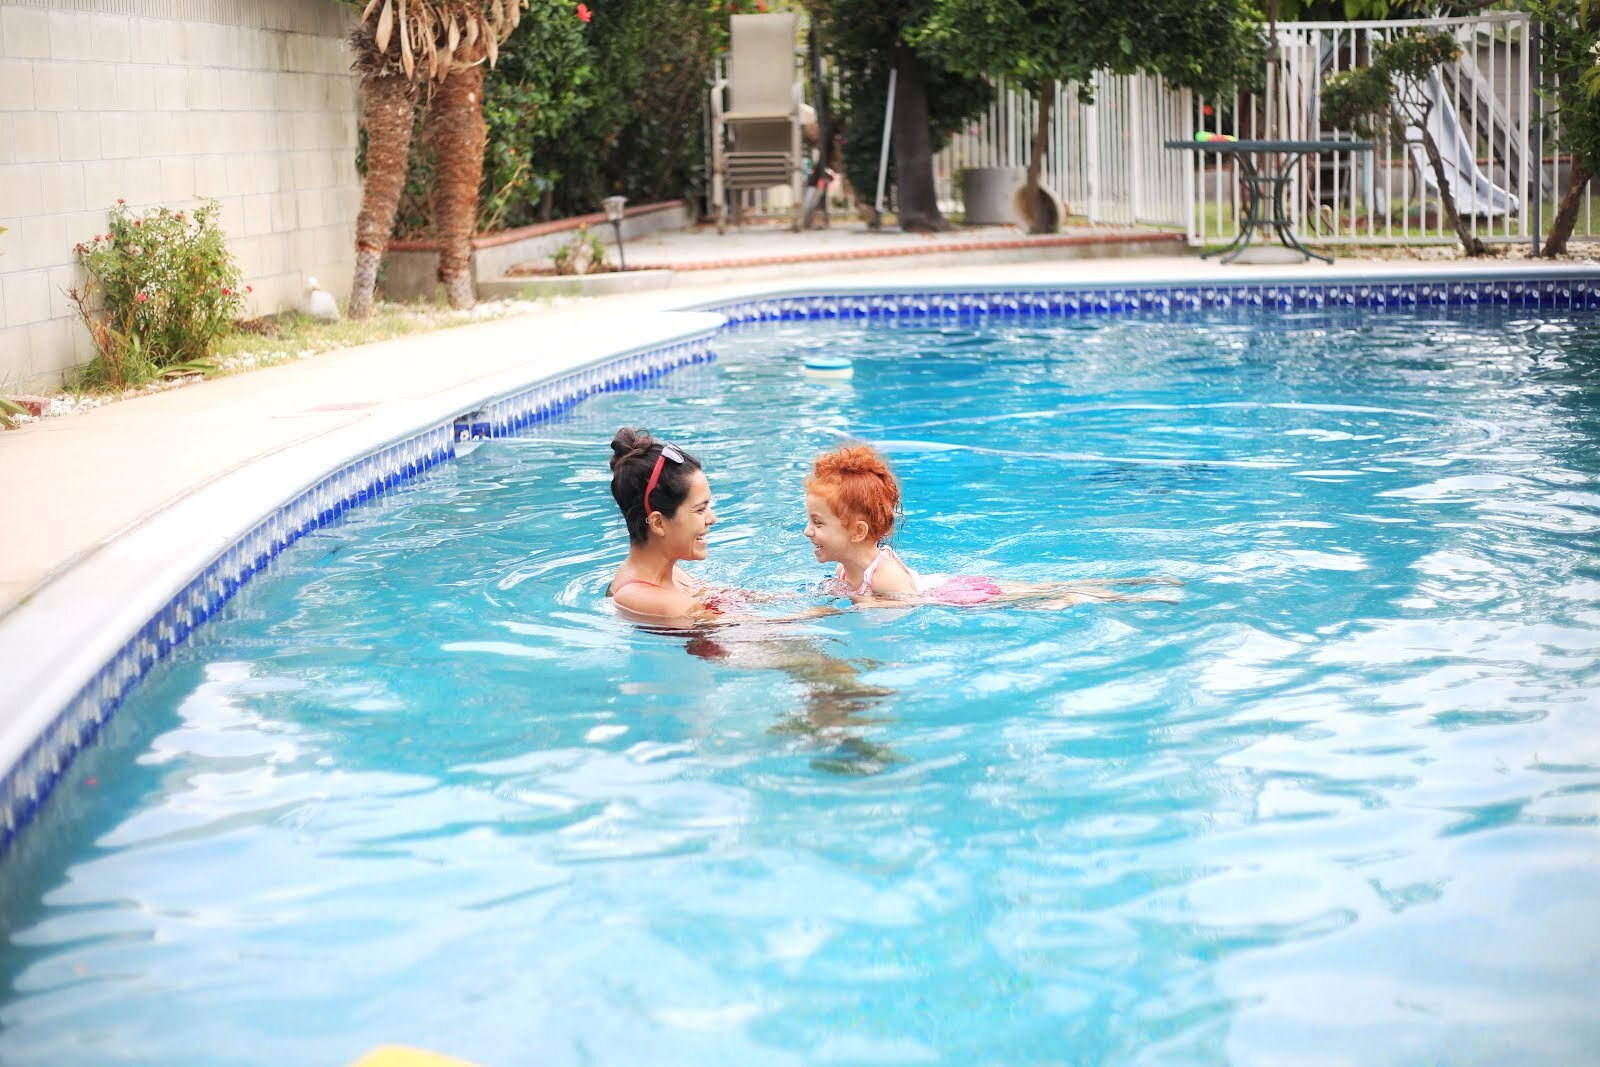 Learn to Swim Safety Skills and Expectations by Age